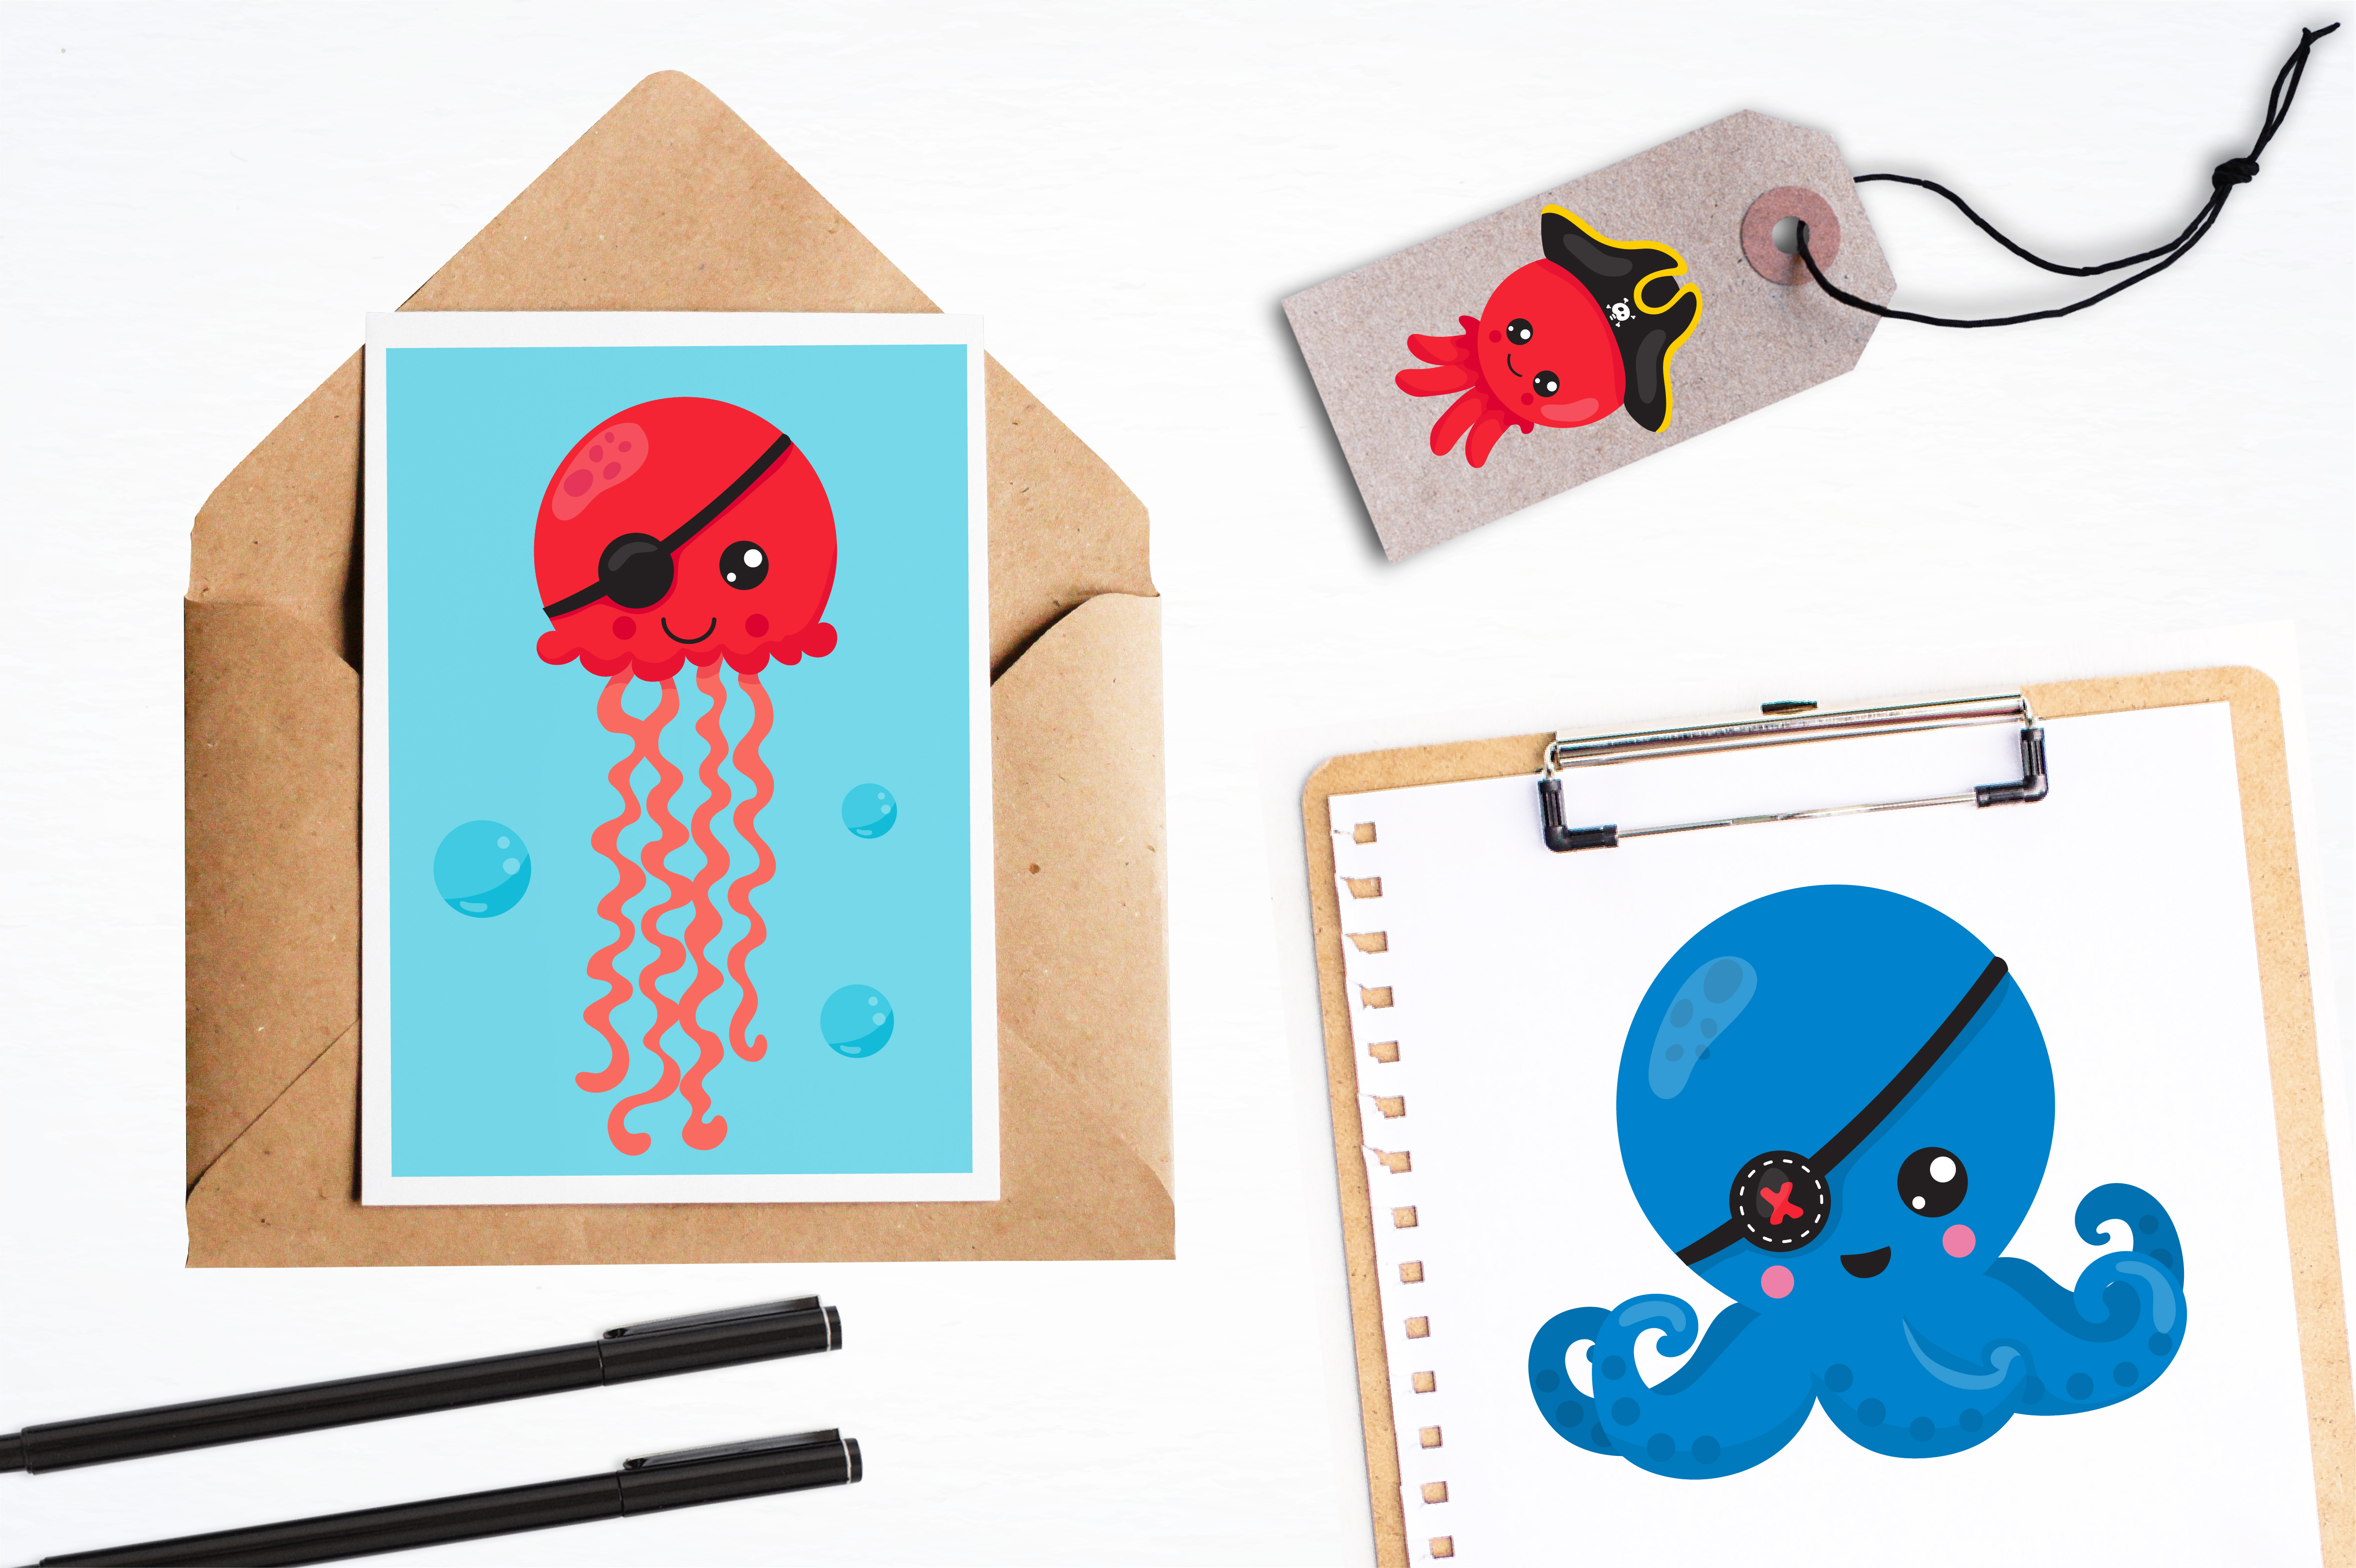 Pirate octopus graphics and illustrations example image 4